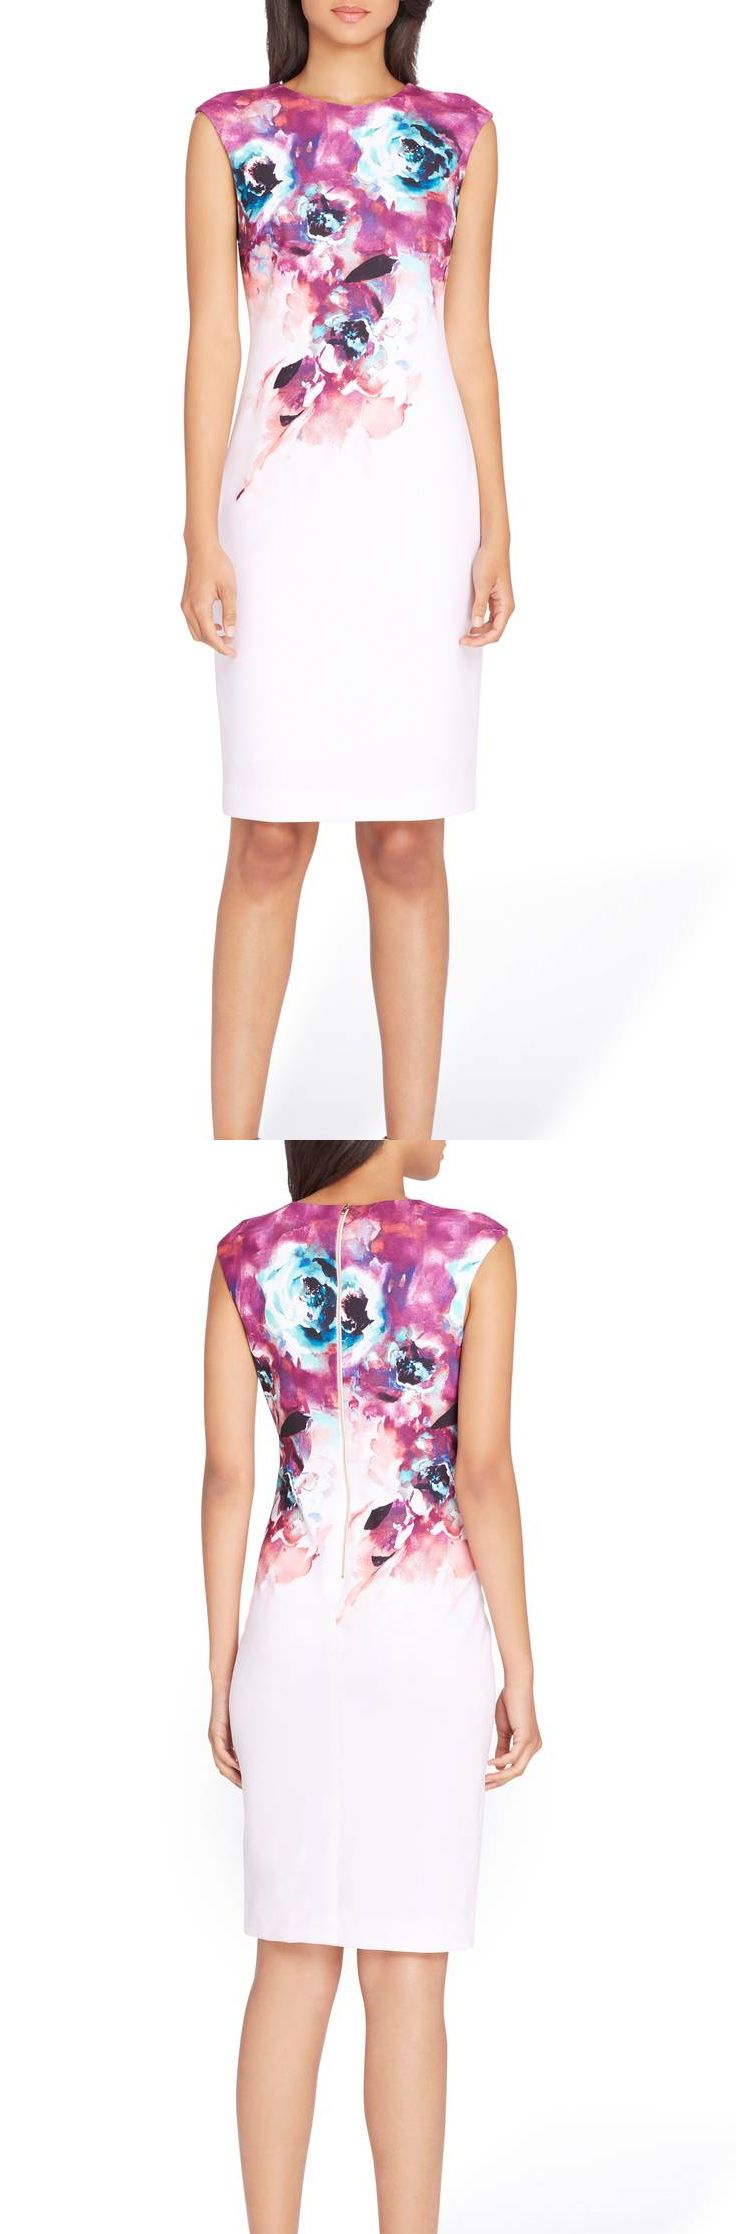 Floral Sheath Dress with Ombre Floral Print. Beautiful fitted boycon summer events dress for Kentucky Derby, Royal Ascot, Racing fashion, or spring summer wedding guest outfits inspiration, outfit ideas. Fashionista. #racingfashion #floraldress #kentuckyderby #bodycondresses #sheathdress #royalascot #ascotoutfits #weddings #weddingguest #affiliatelink #fashion #ootd #dresses #derbyoutfits